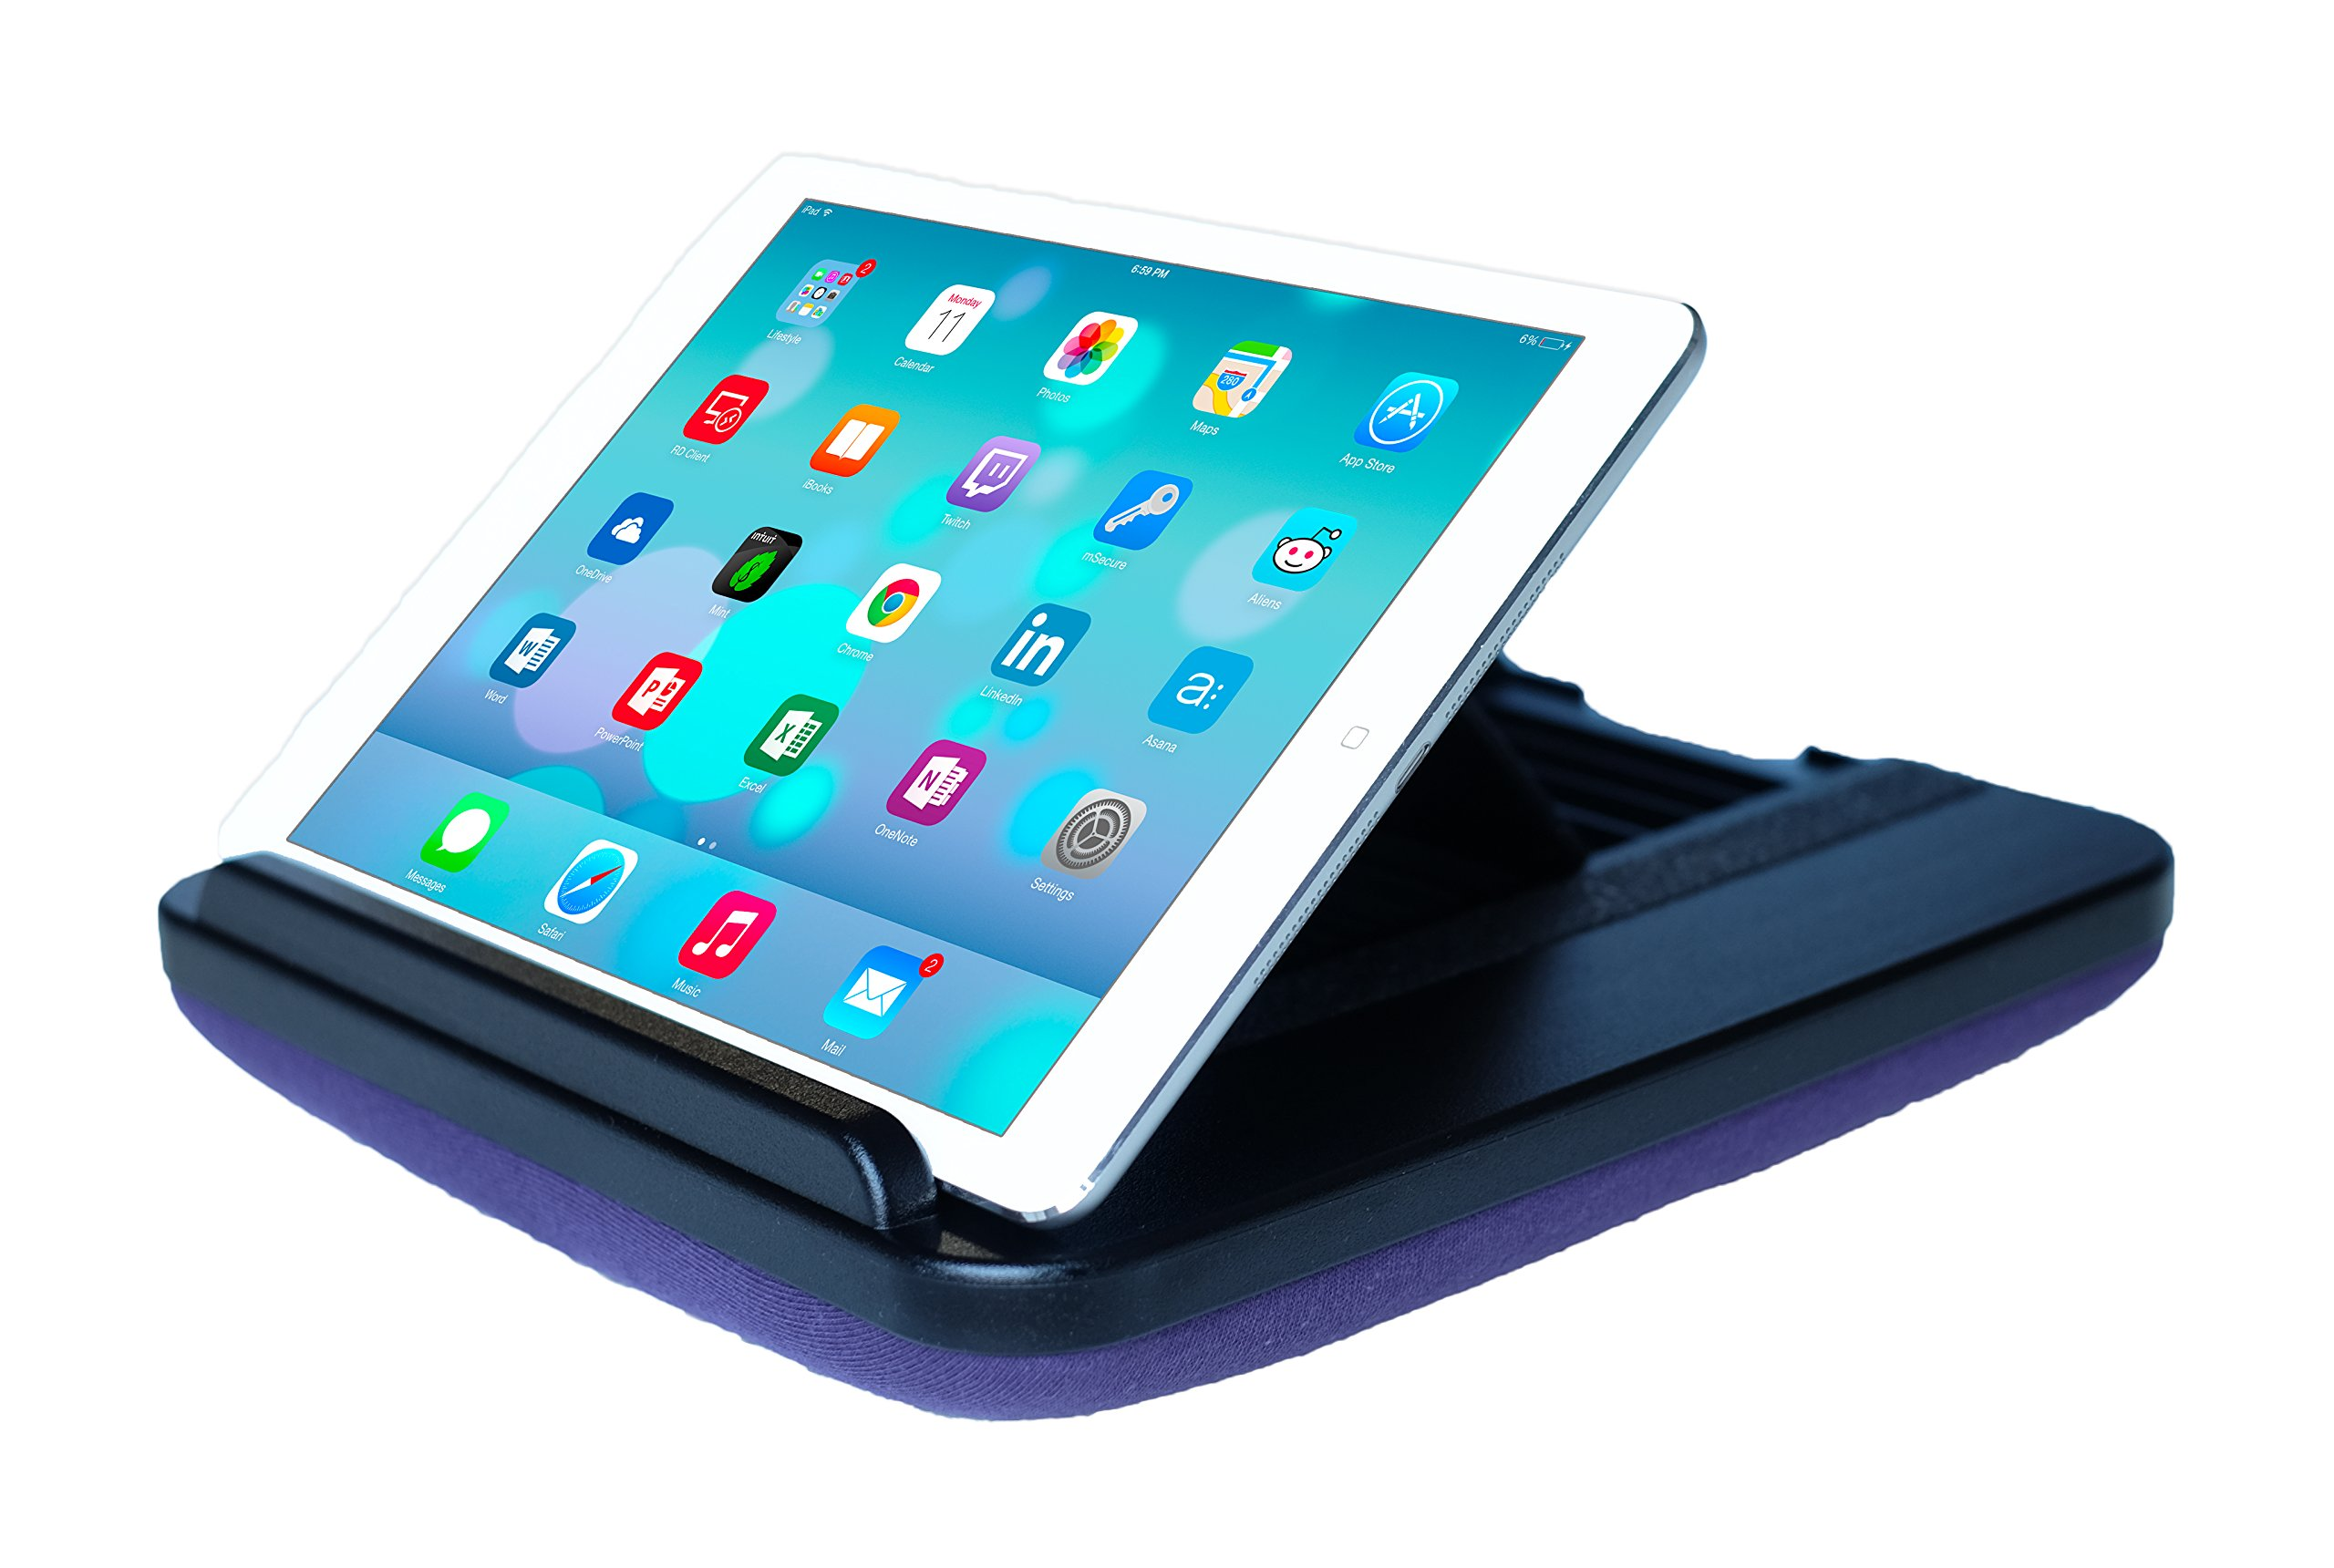 Prop 'n Go Slim - Adjustable Bed Holder & Lap Stand for iPad, iPad Mini, Tablets and eReaders with Multi Angle Control (Purple)